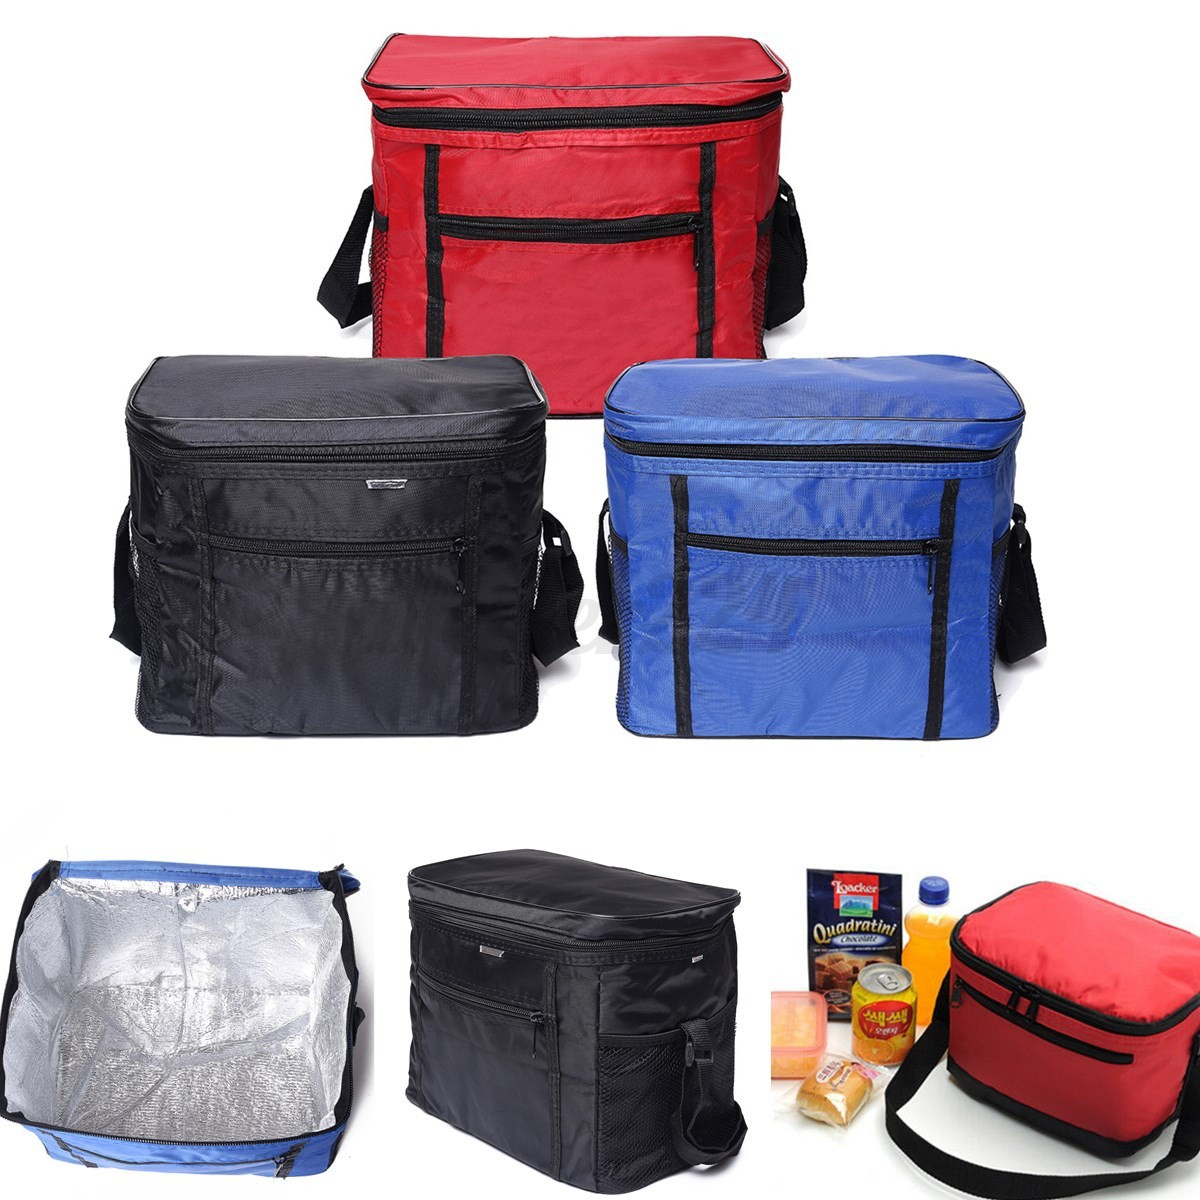 bento lunch box coles easylunchboxes 3 compartment bento lunch box containers outdoor coolers. Black Bedroom Furniture Sets. Home Design Ideas